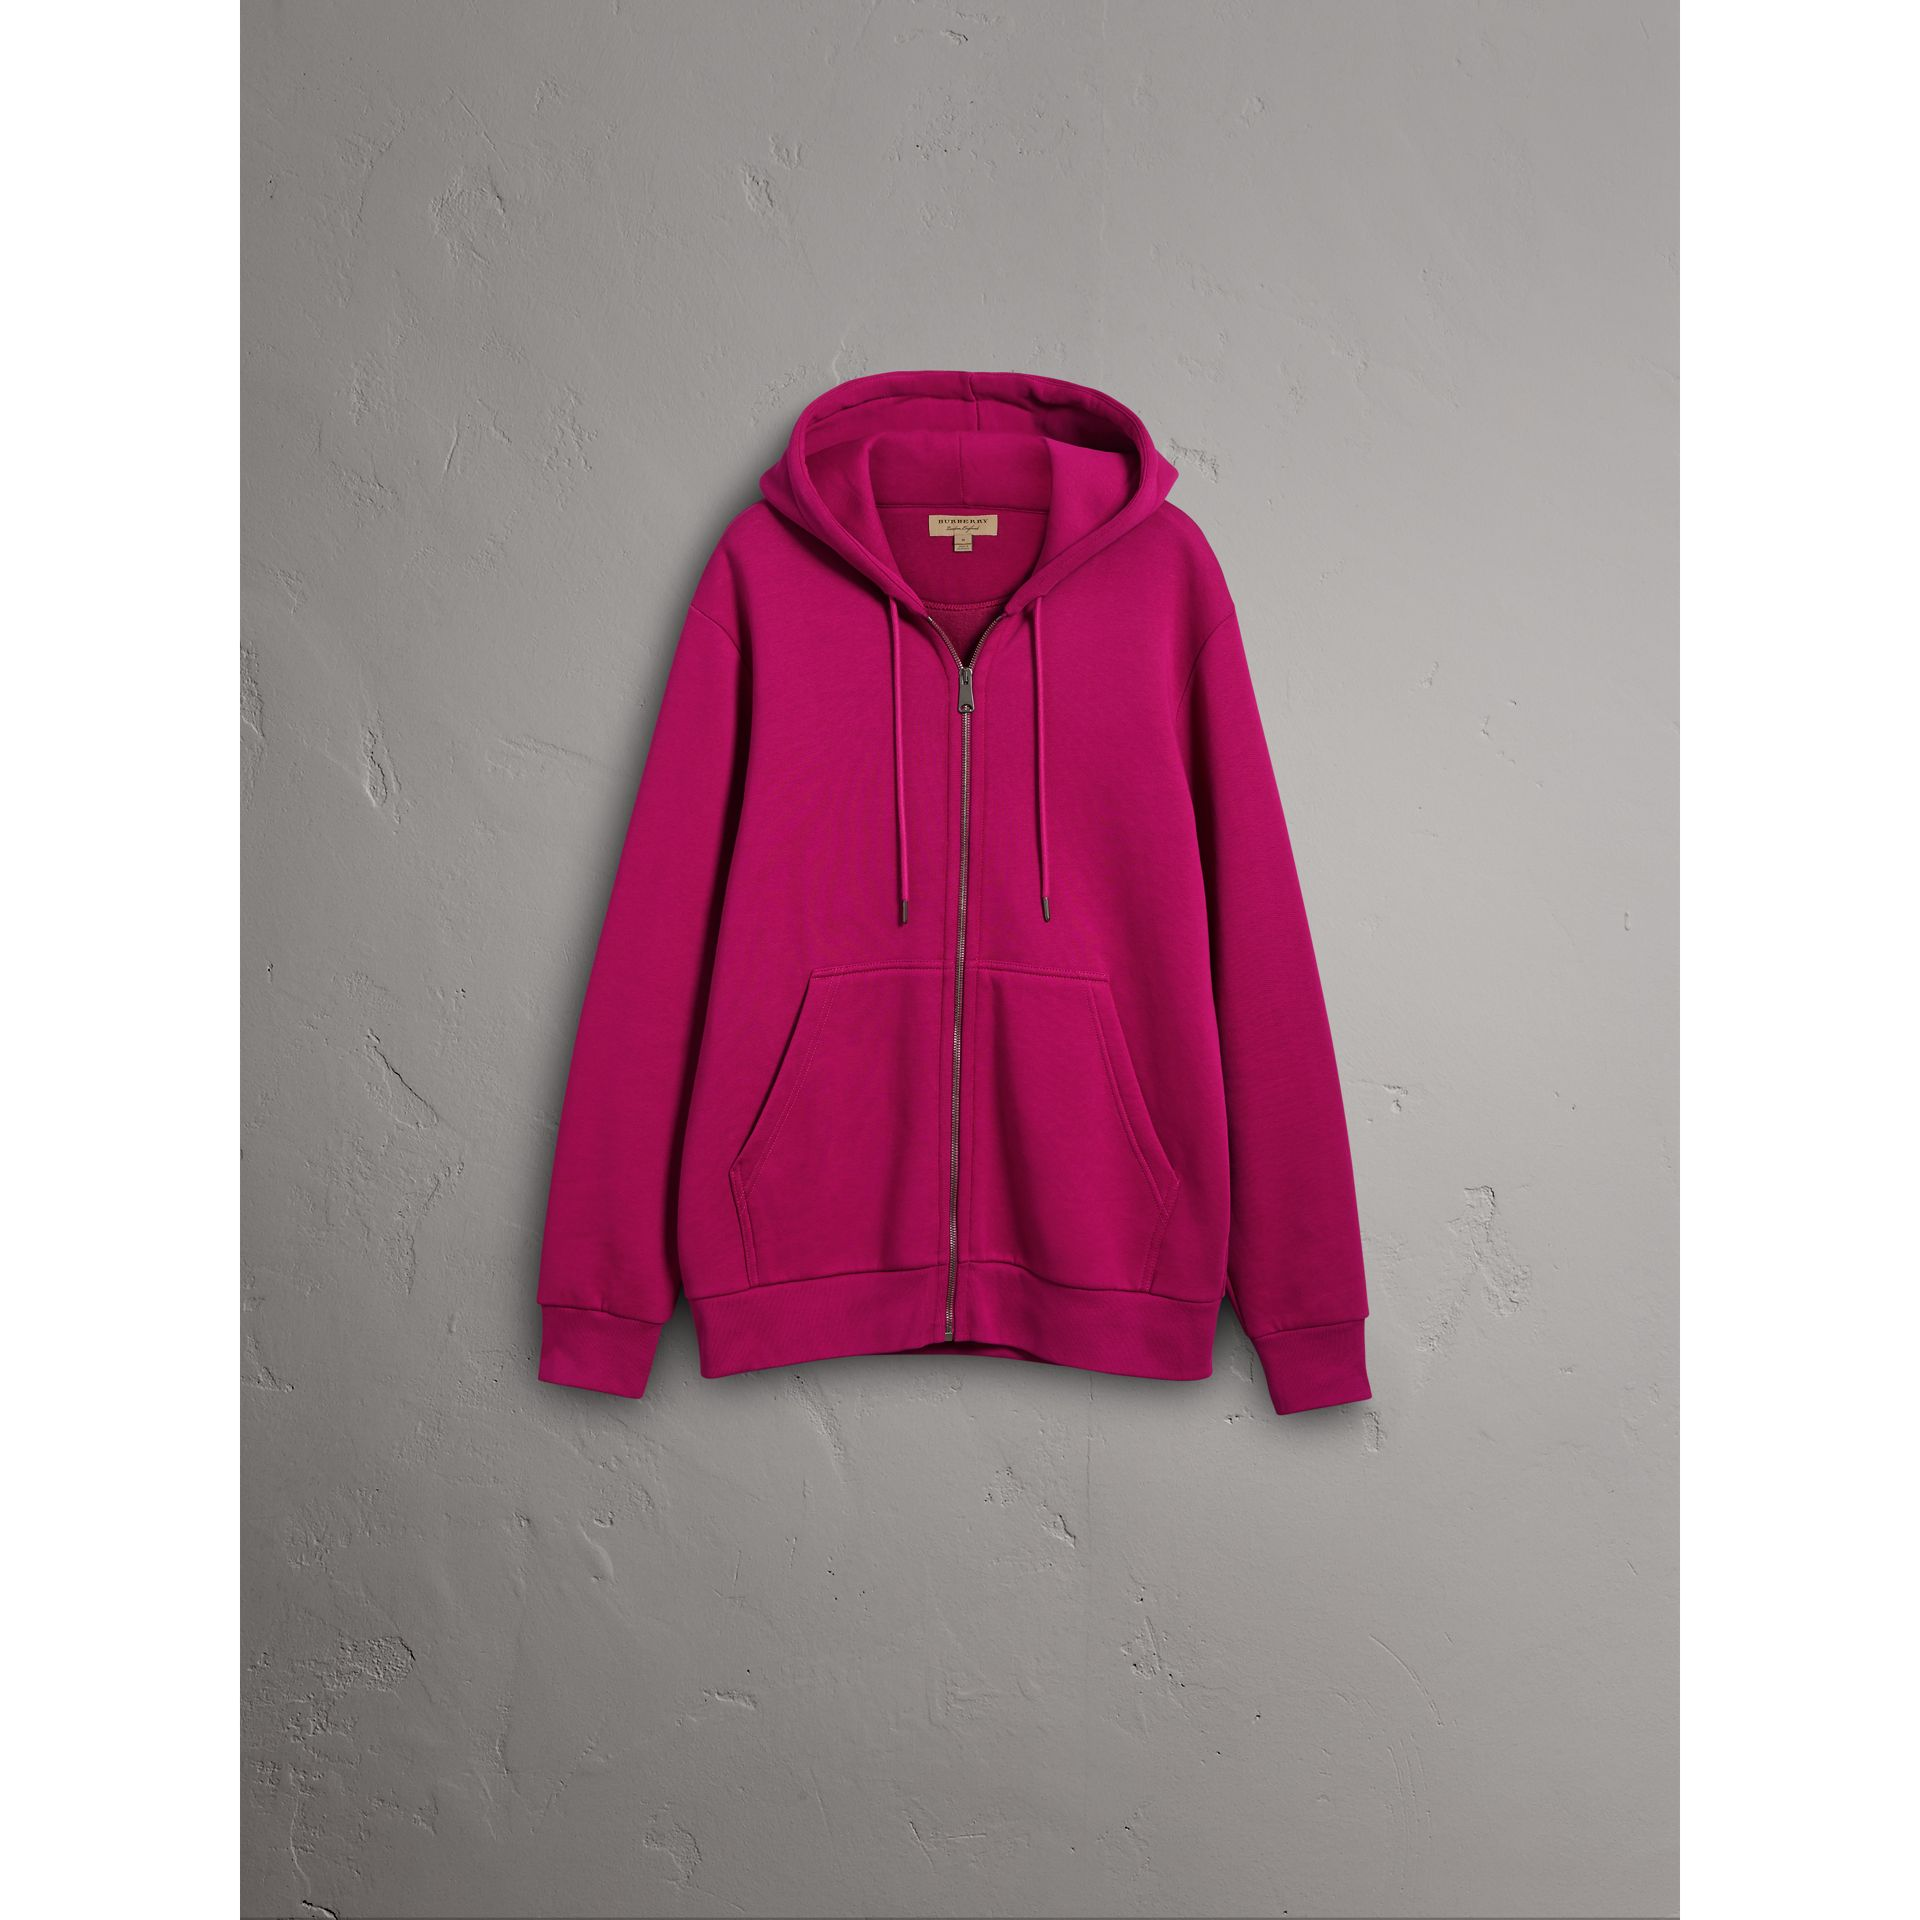 Cotton Jersey Zip-front Hooded Top in Bright Fuchsia - Men | Burberry Hong Kong - gallery image 1